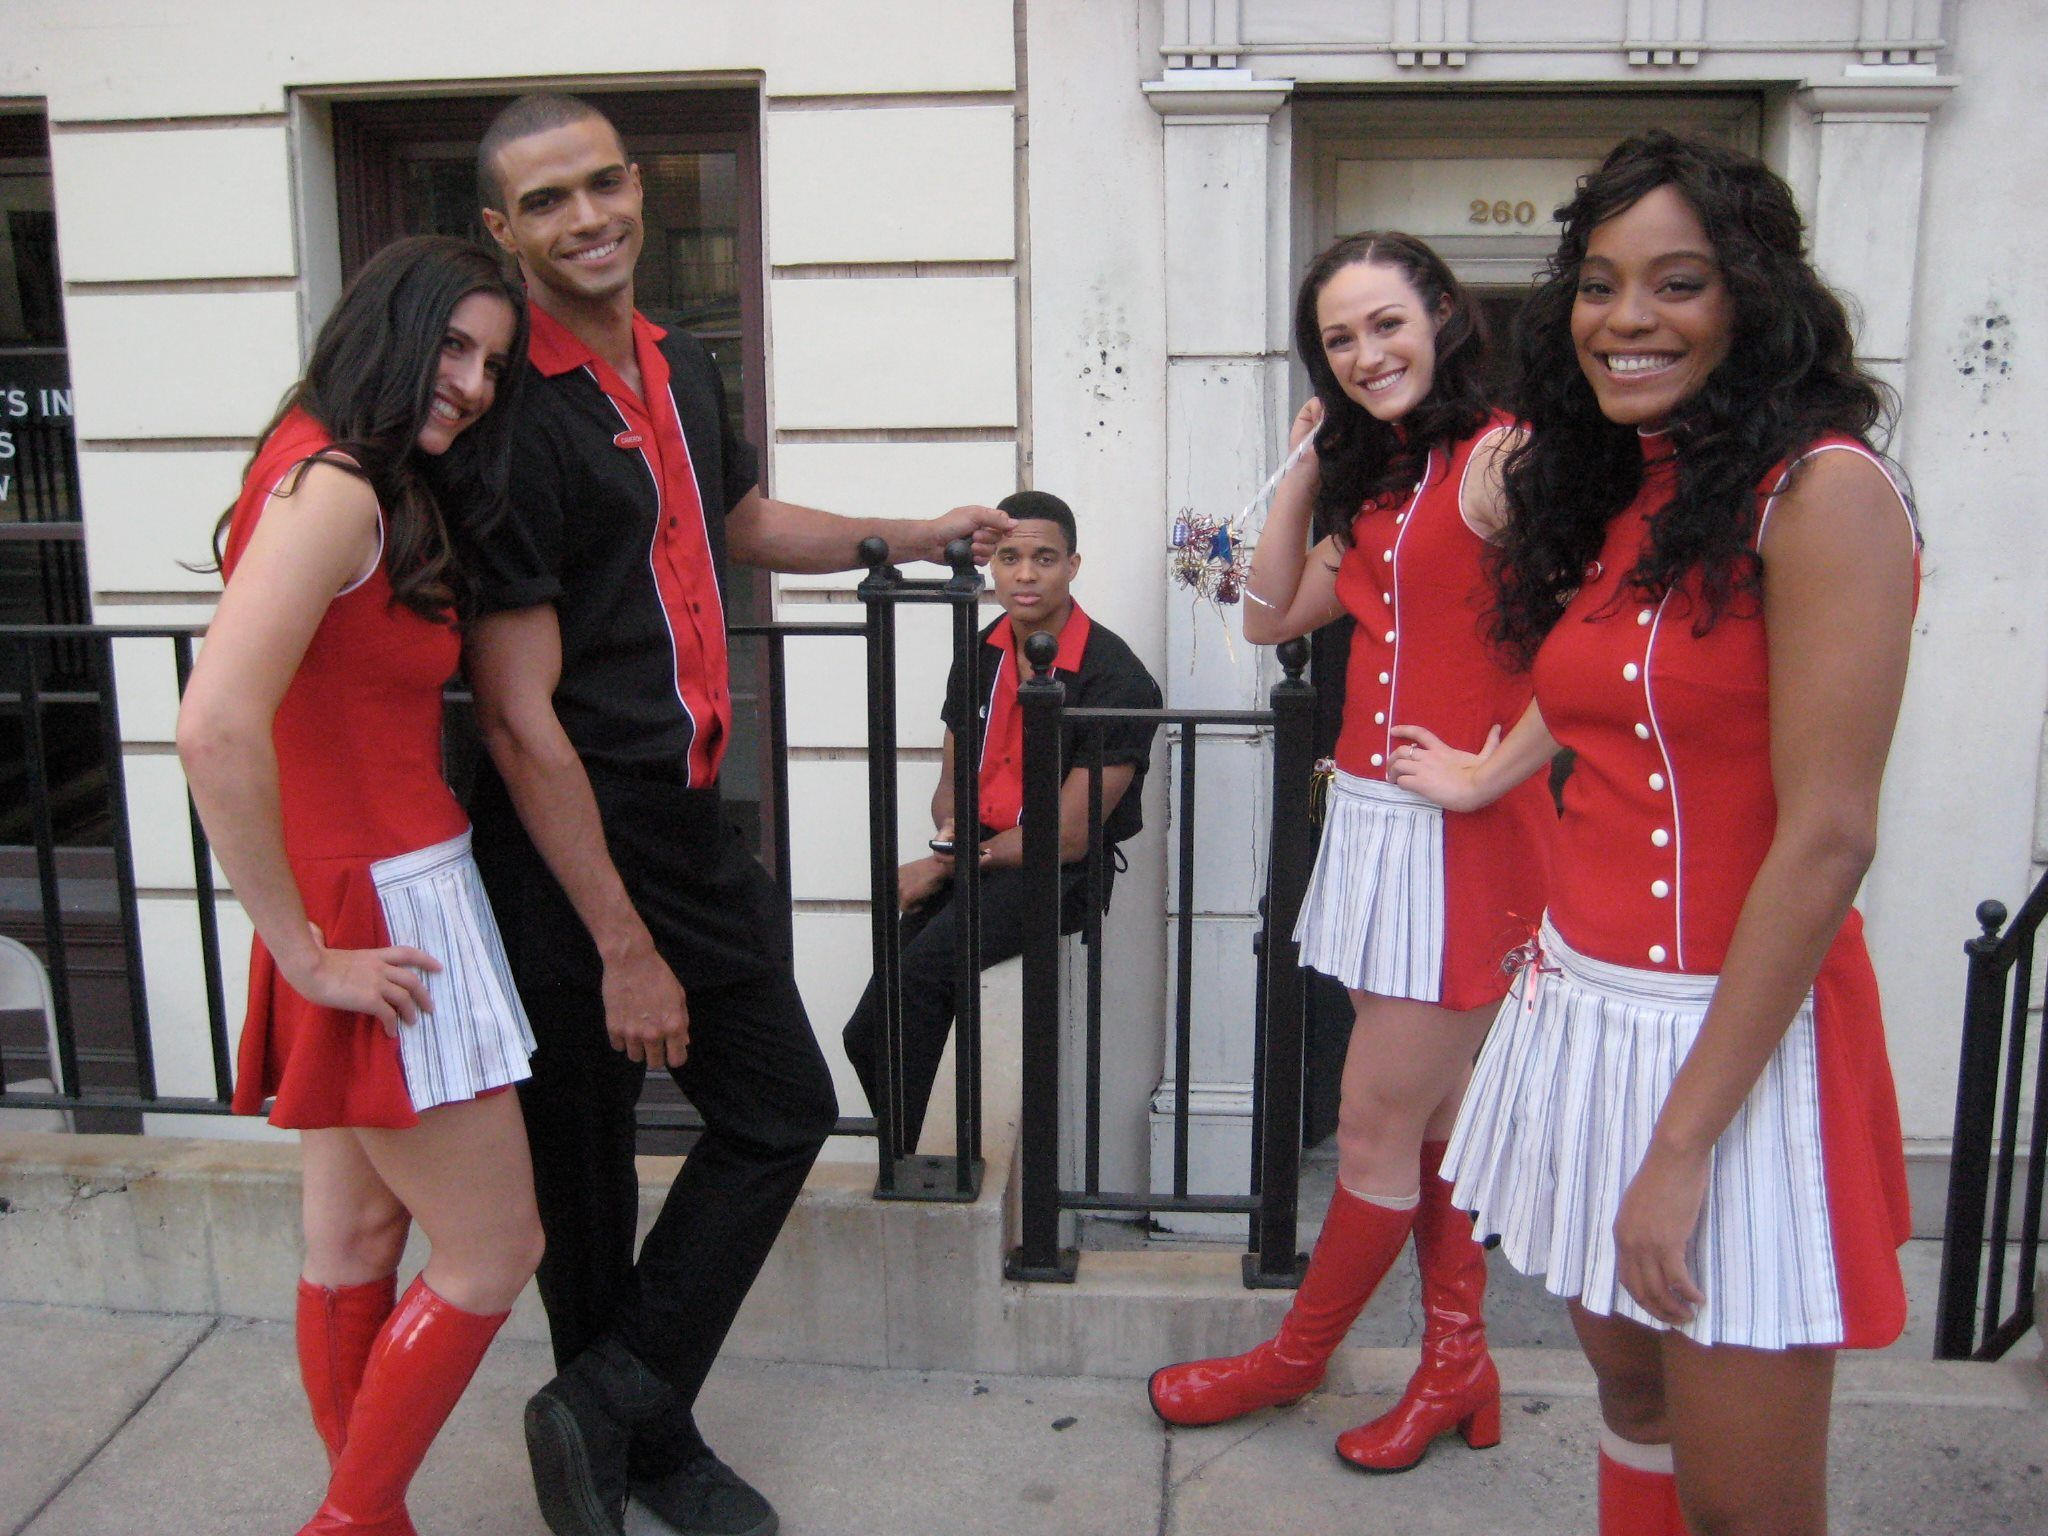 Dancer quin litpon and others on set for glee fashion